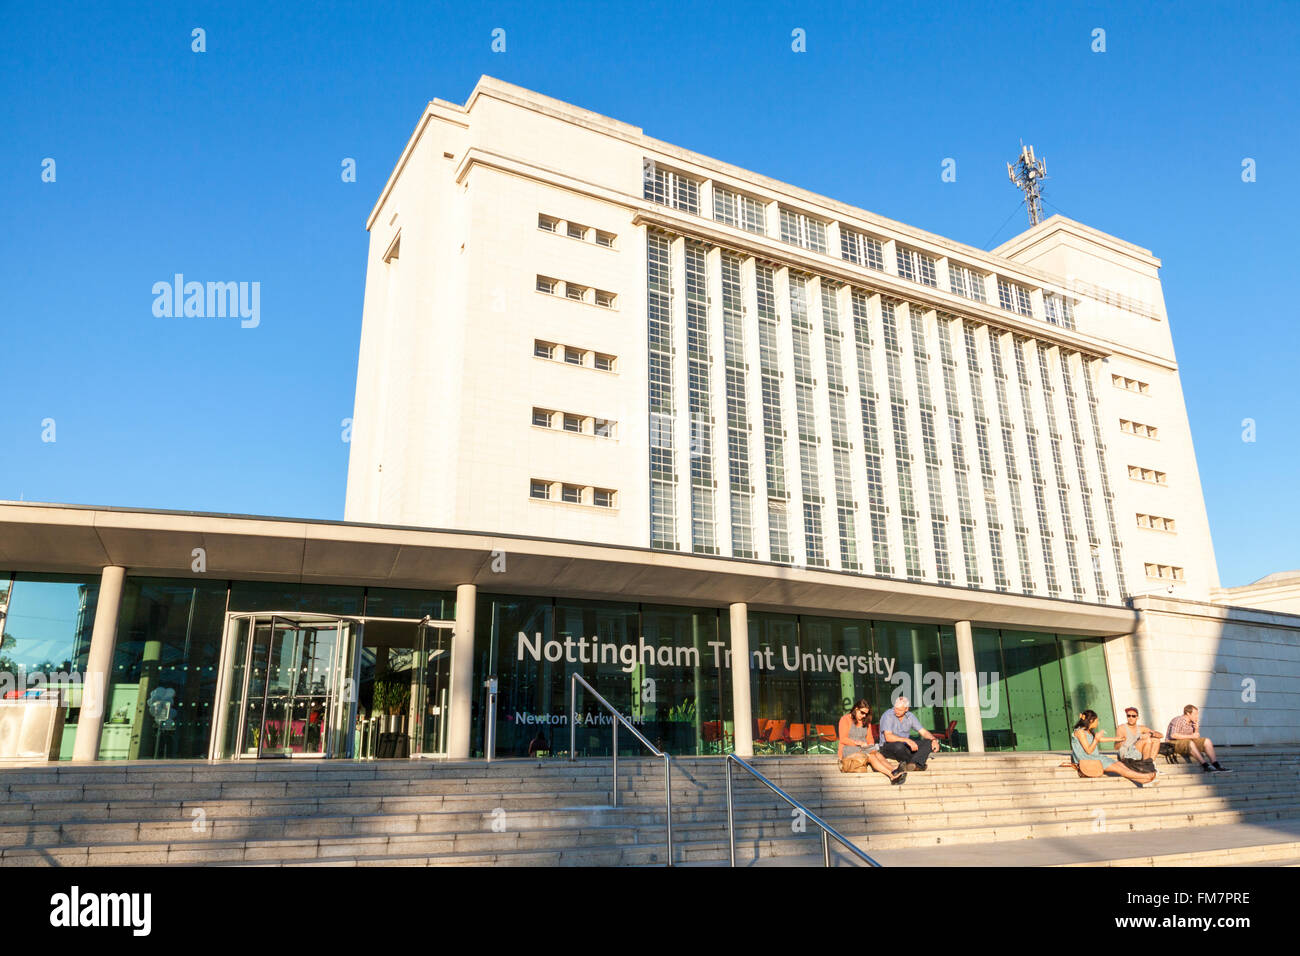 Students in the Summer sunshine at Nottingham Trent University (NTU), Nottingham, England, UK Stock Photo